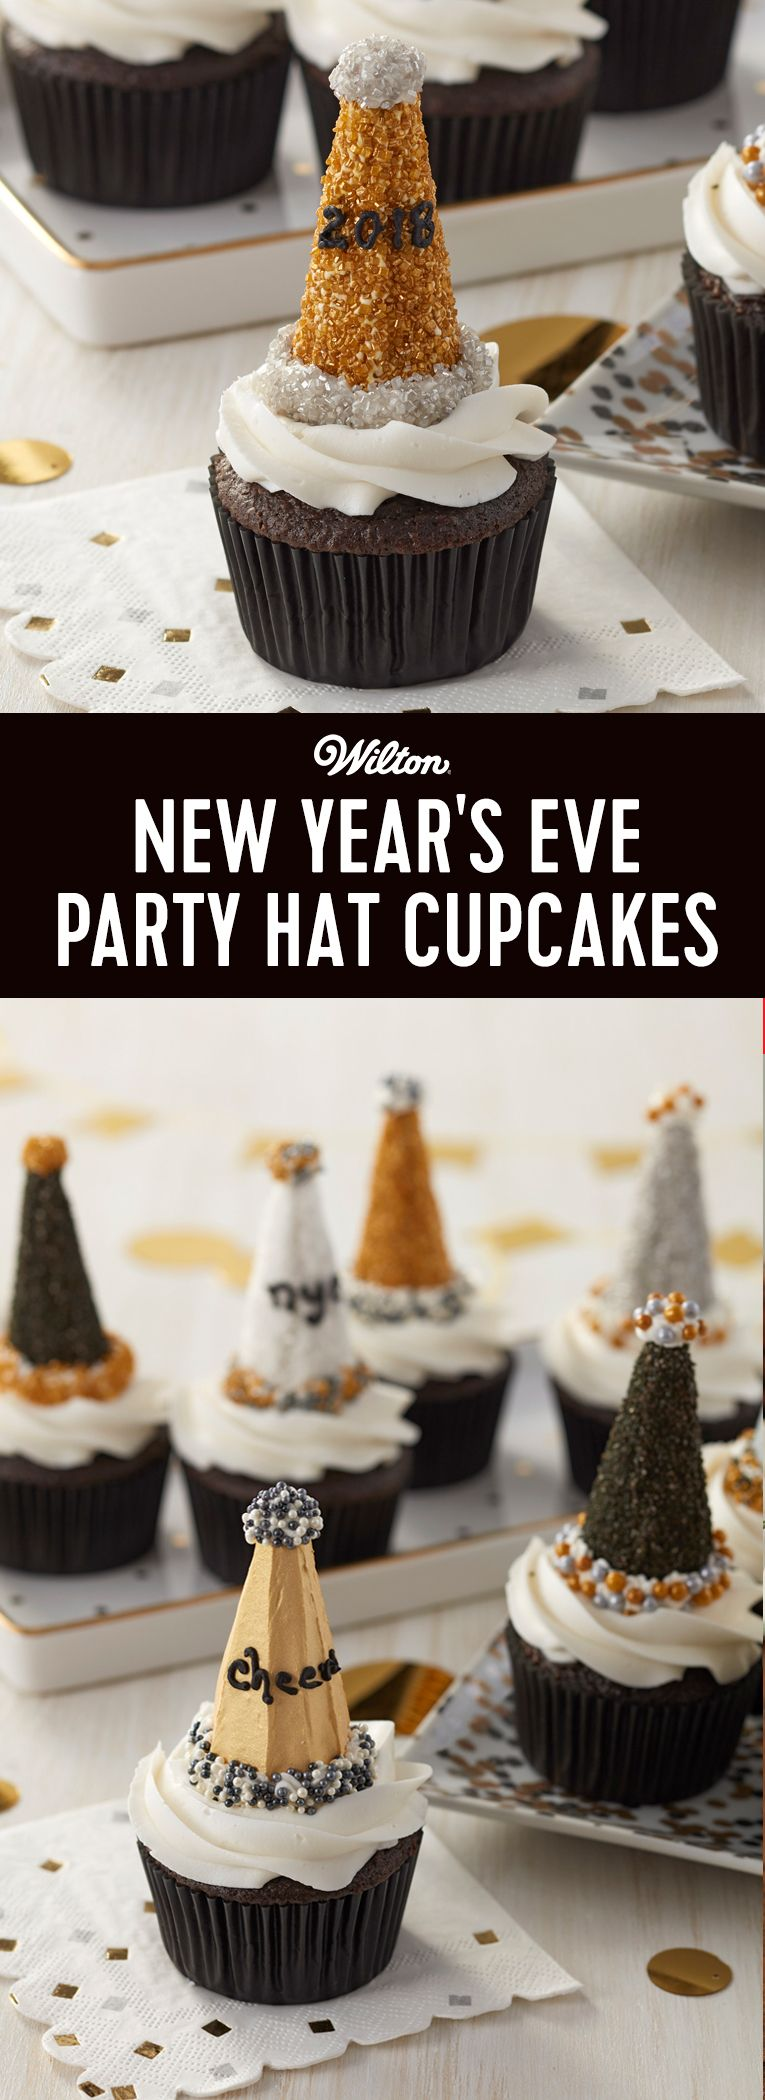 Pin by Kristen on Cooking things in 2020 New years eve